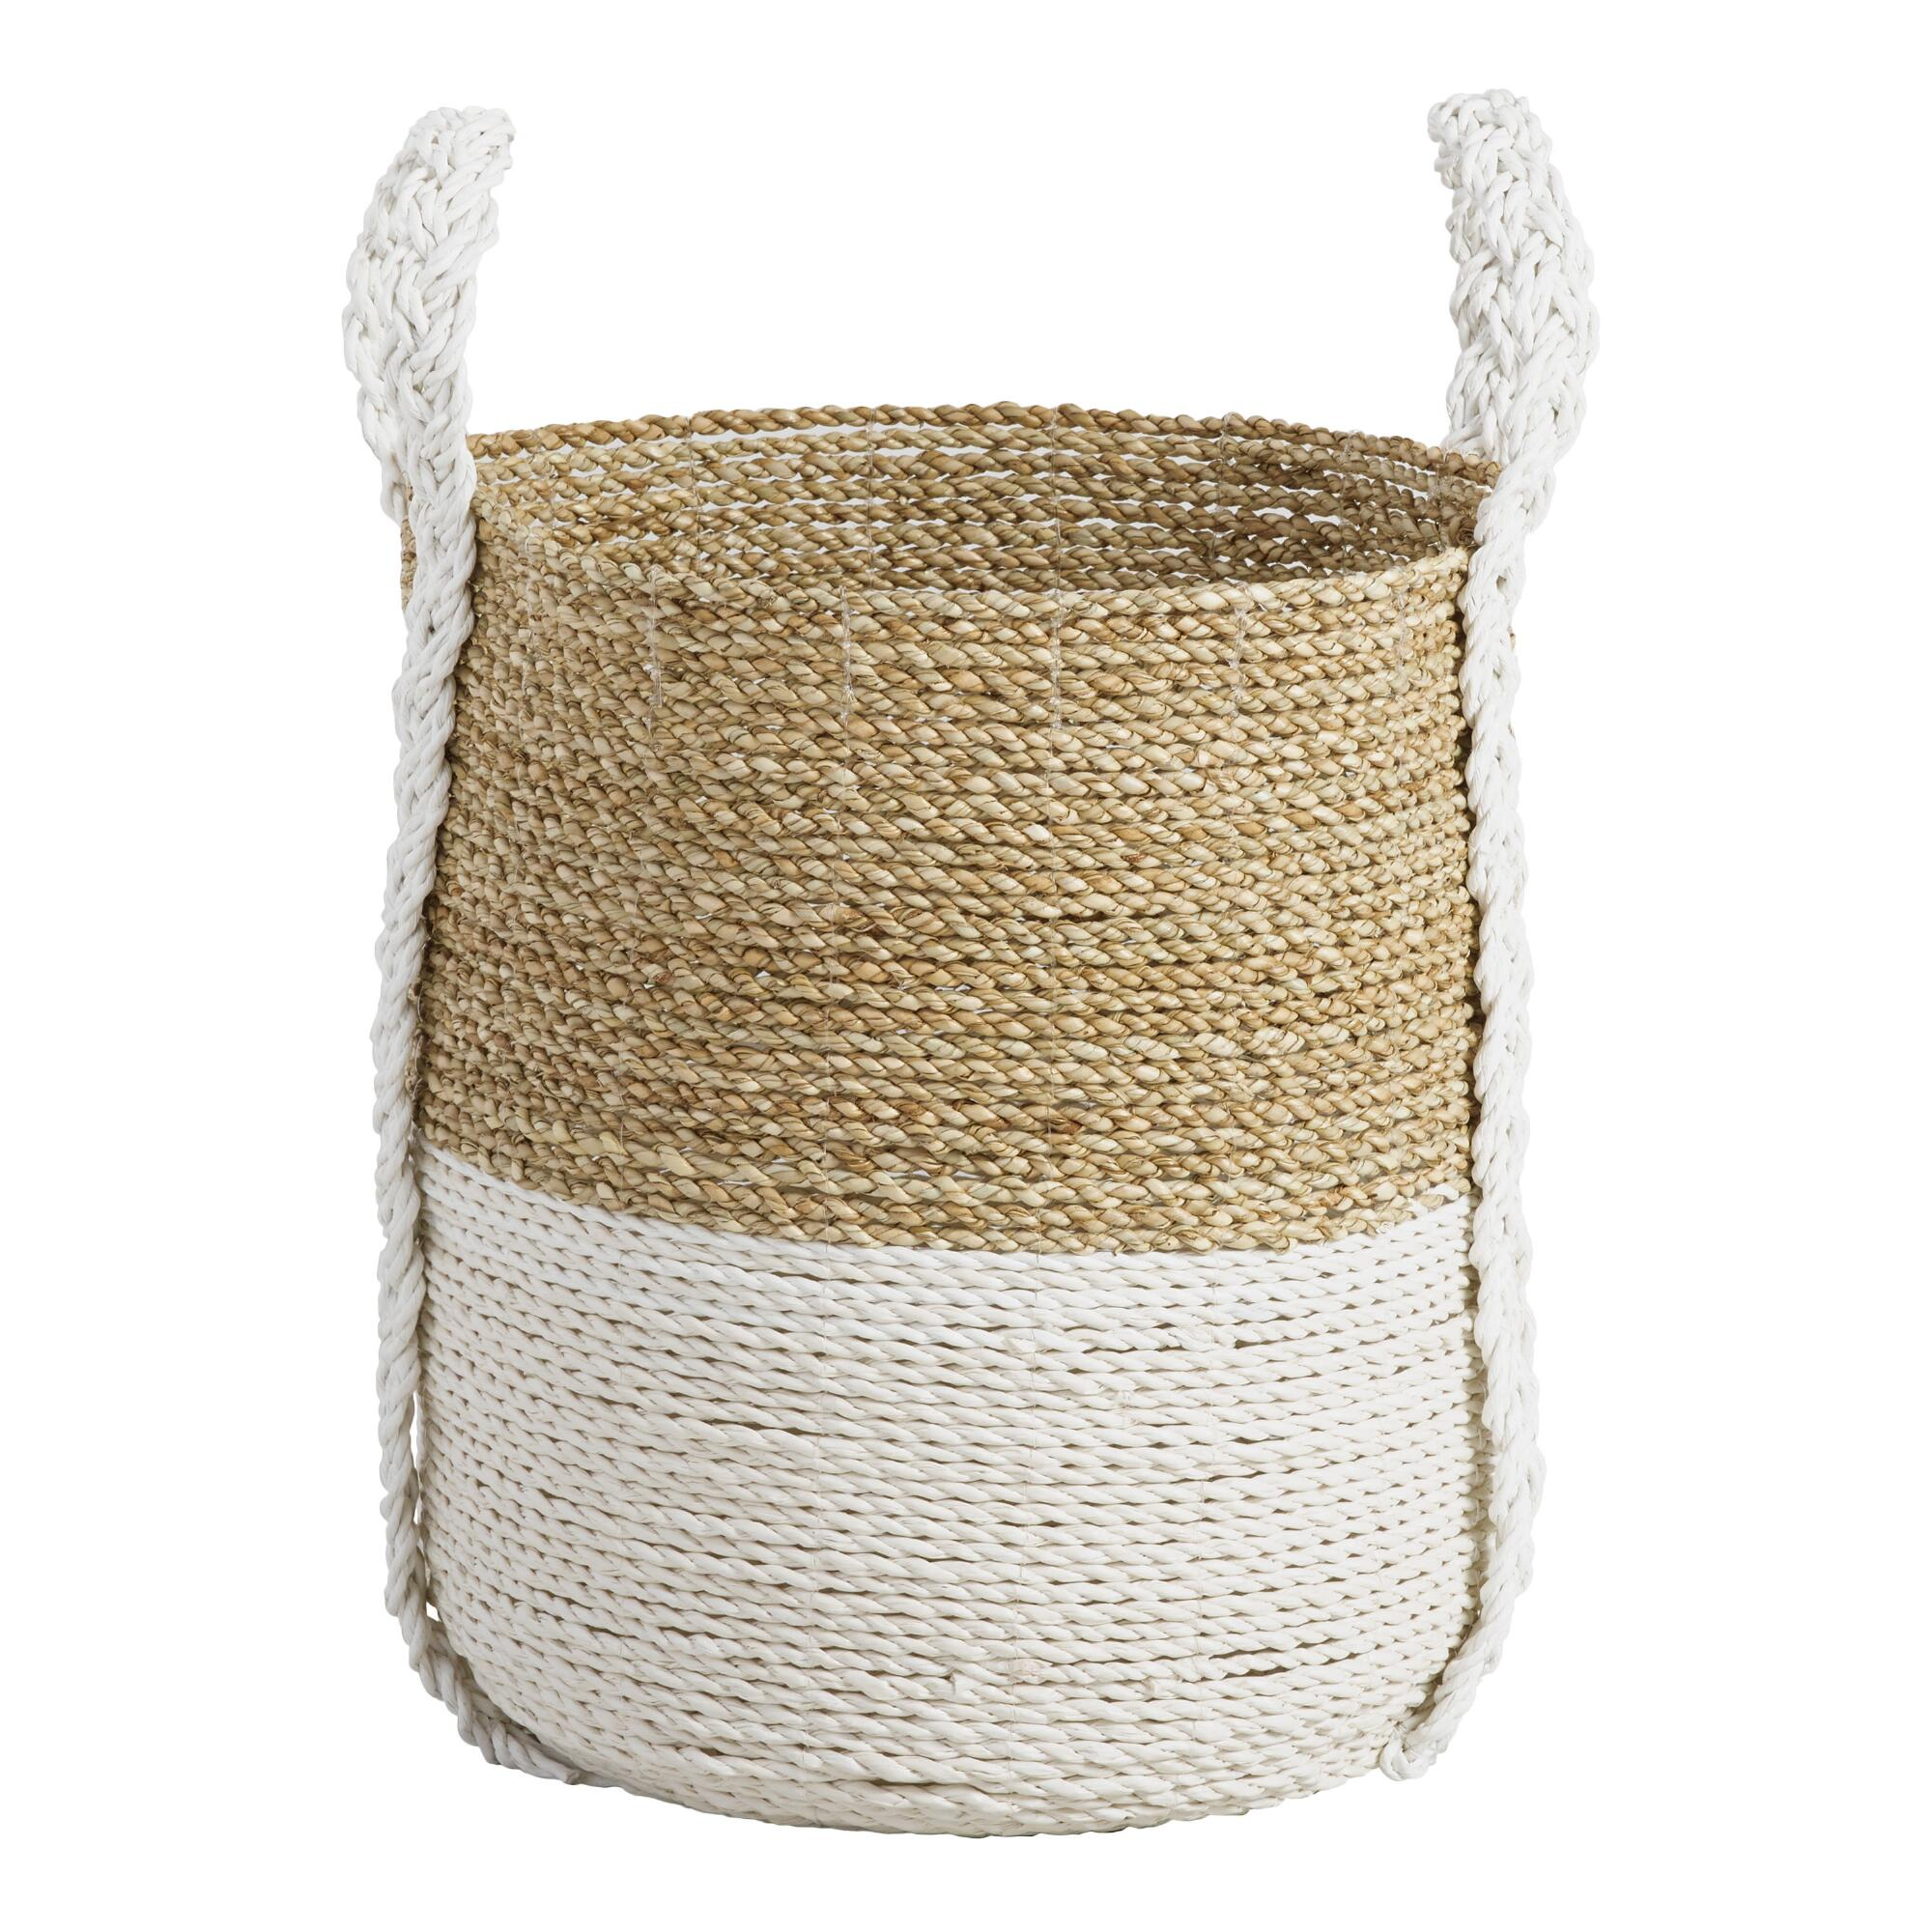 Medium Two Tone Seagrass Bianca Tote Basket: White - Natural Fiber by World Market